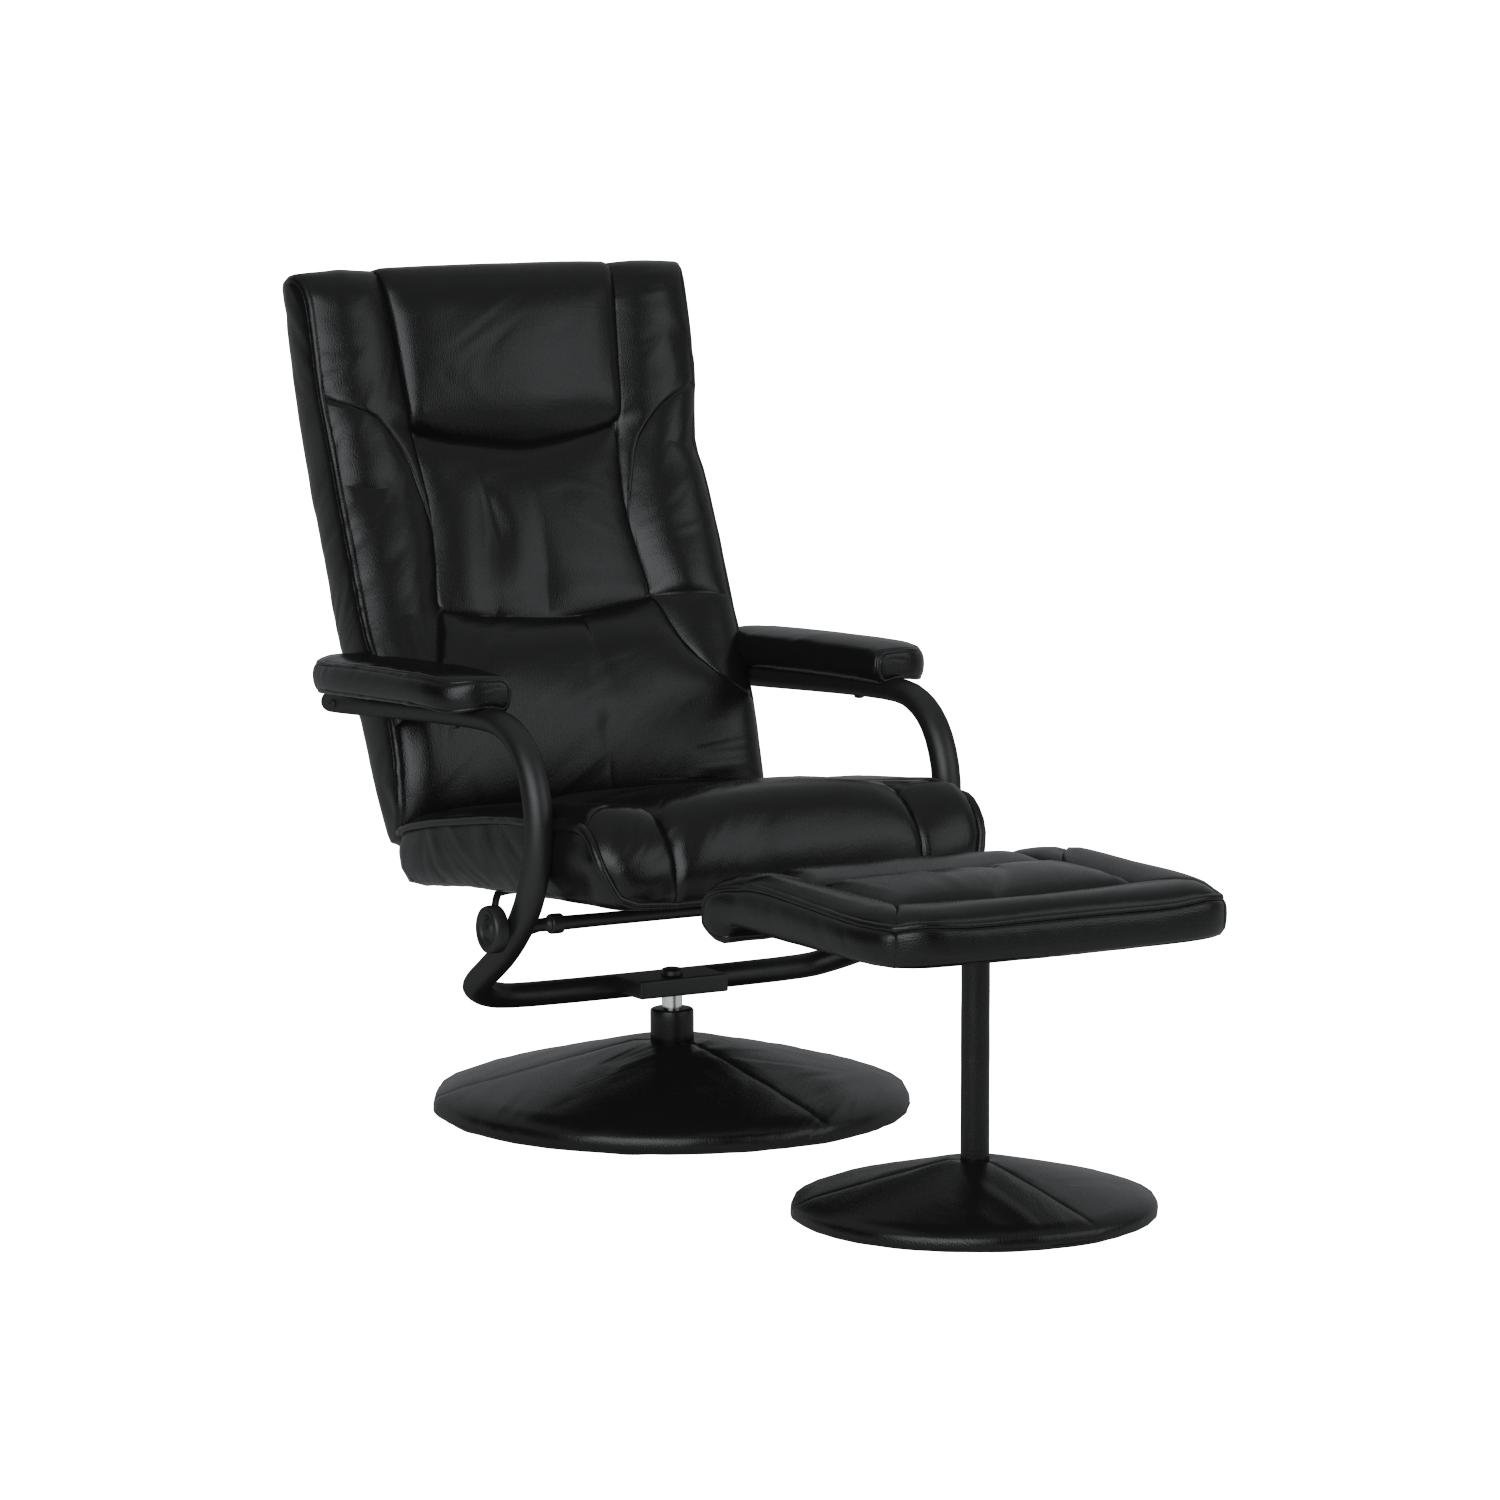 Flash Furniture BT-7862-BK-GG Contemporary Black LeatherSoft Recliner/Ottoman with Wrapped Base by Flash Furniture